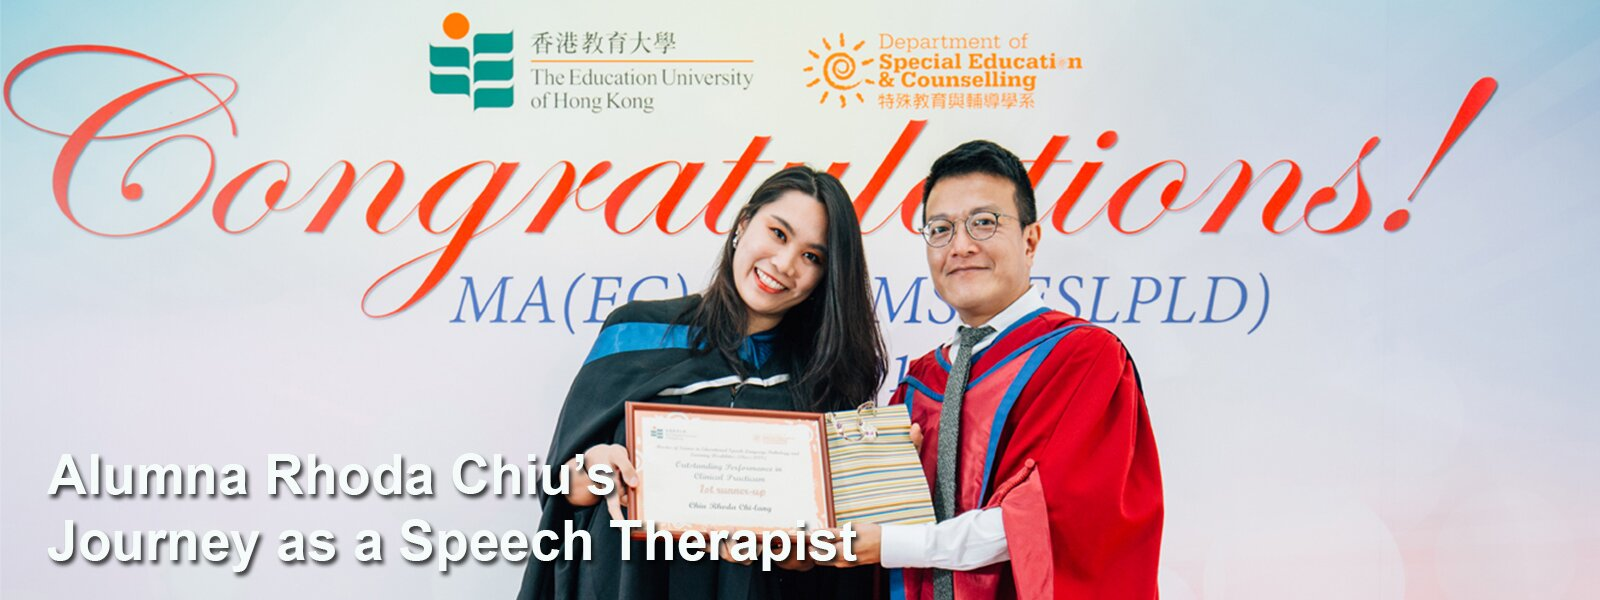 Alumna Rhoda Chiu's Journey as a Speech Therapist